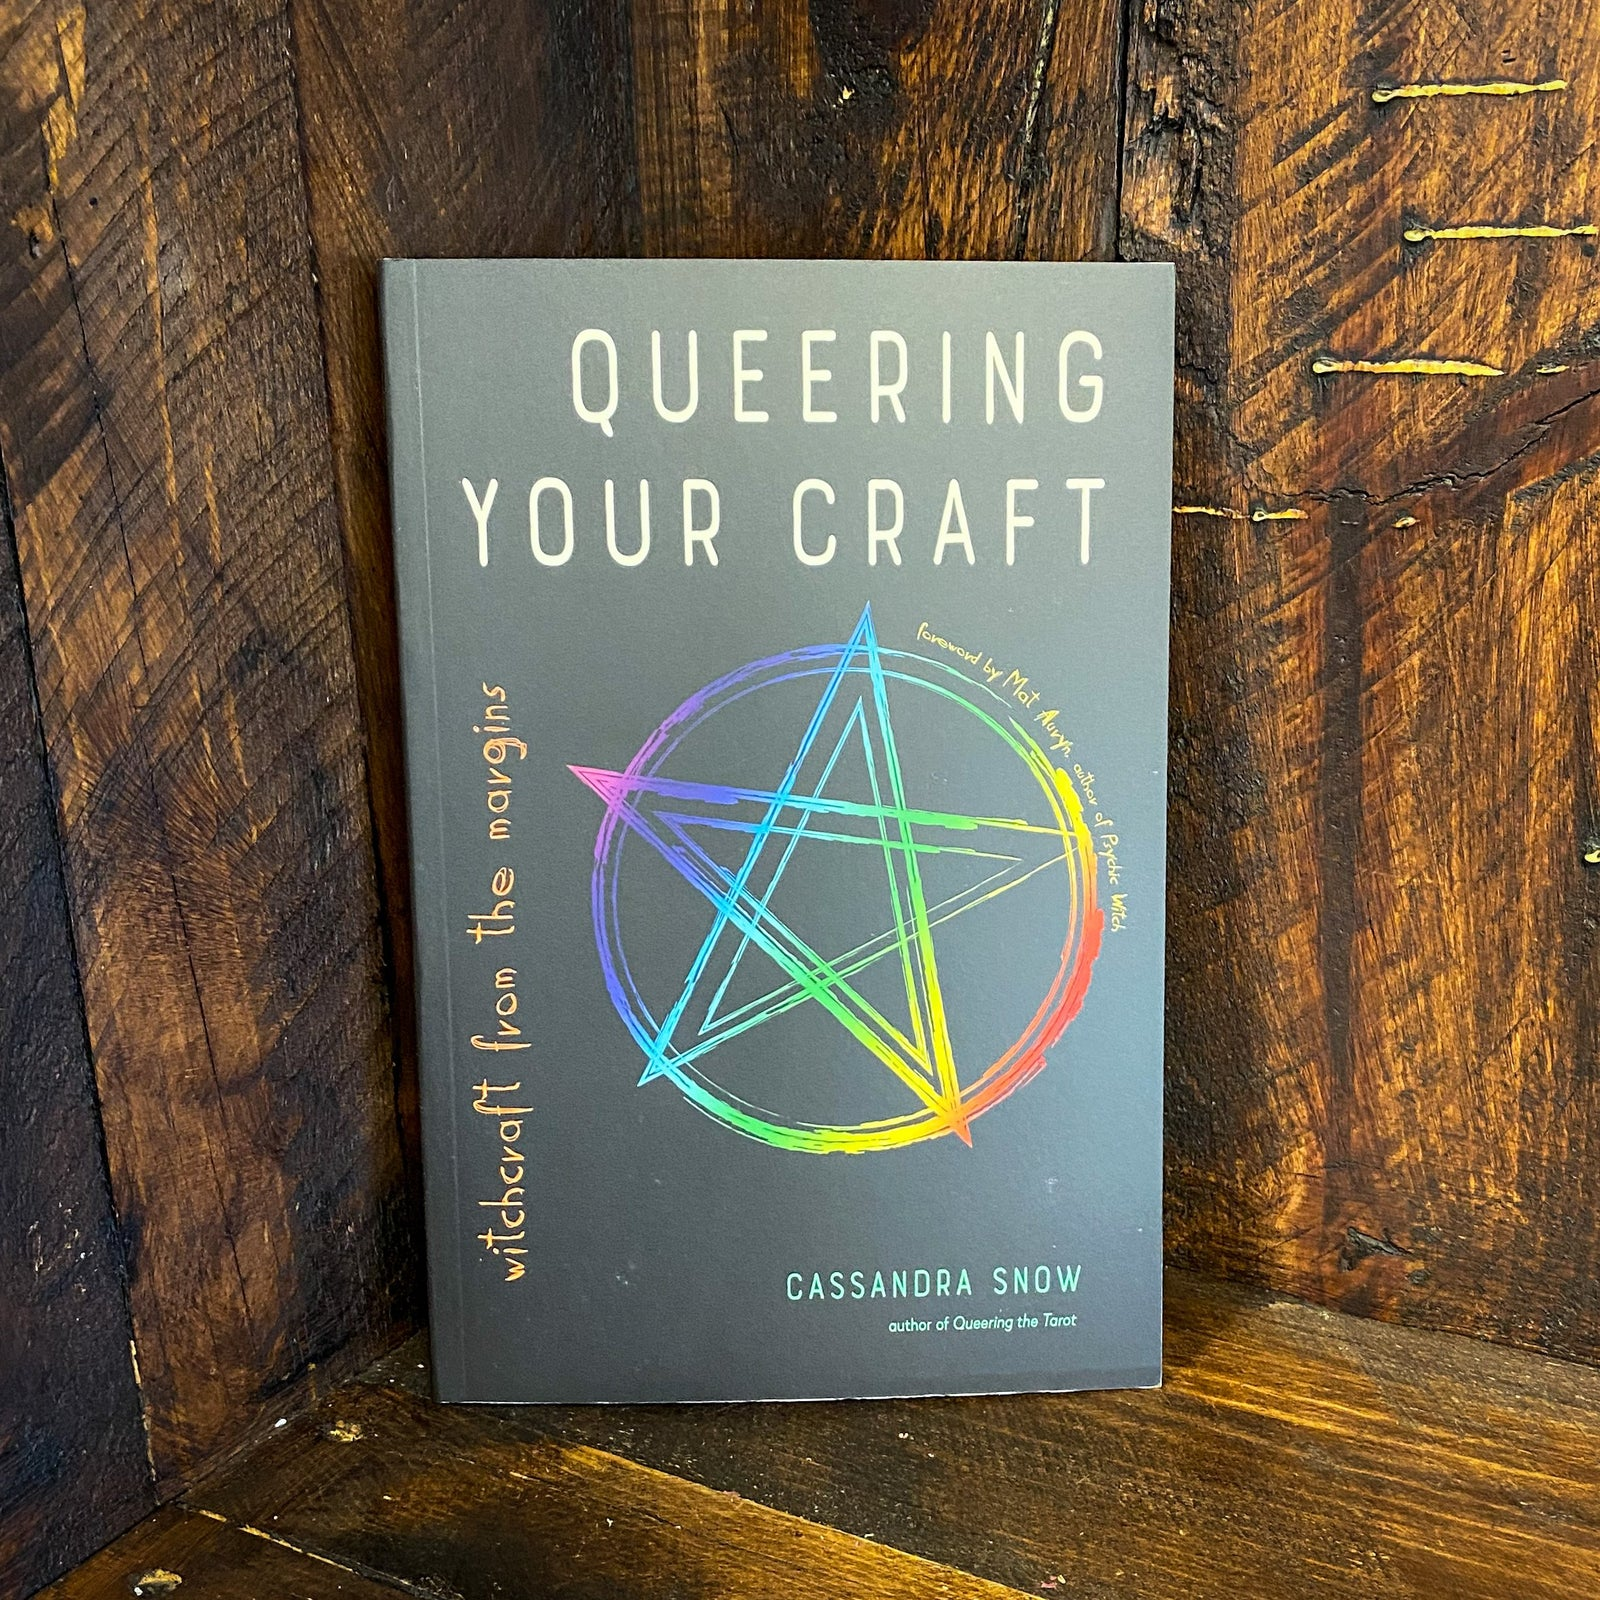 Queering Your Craft